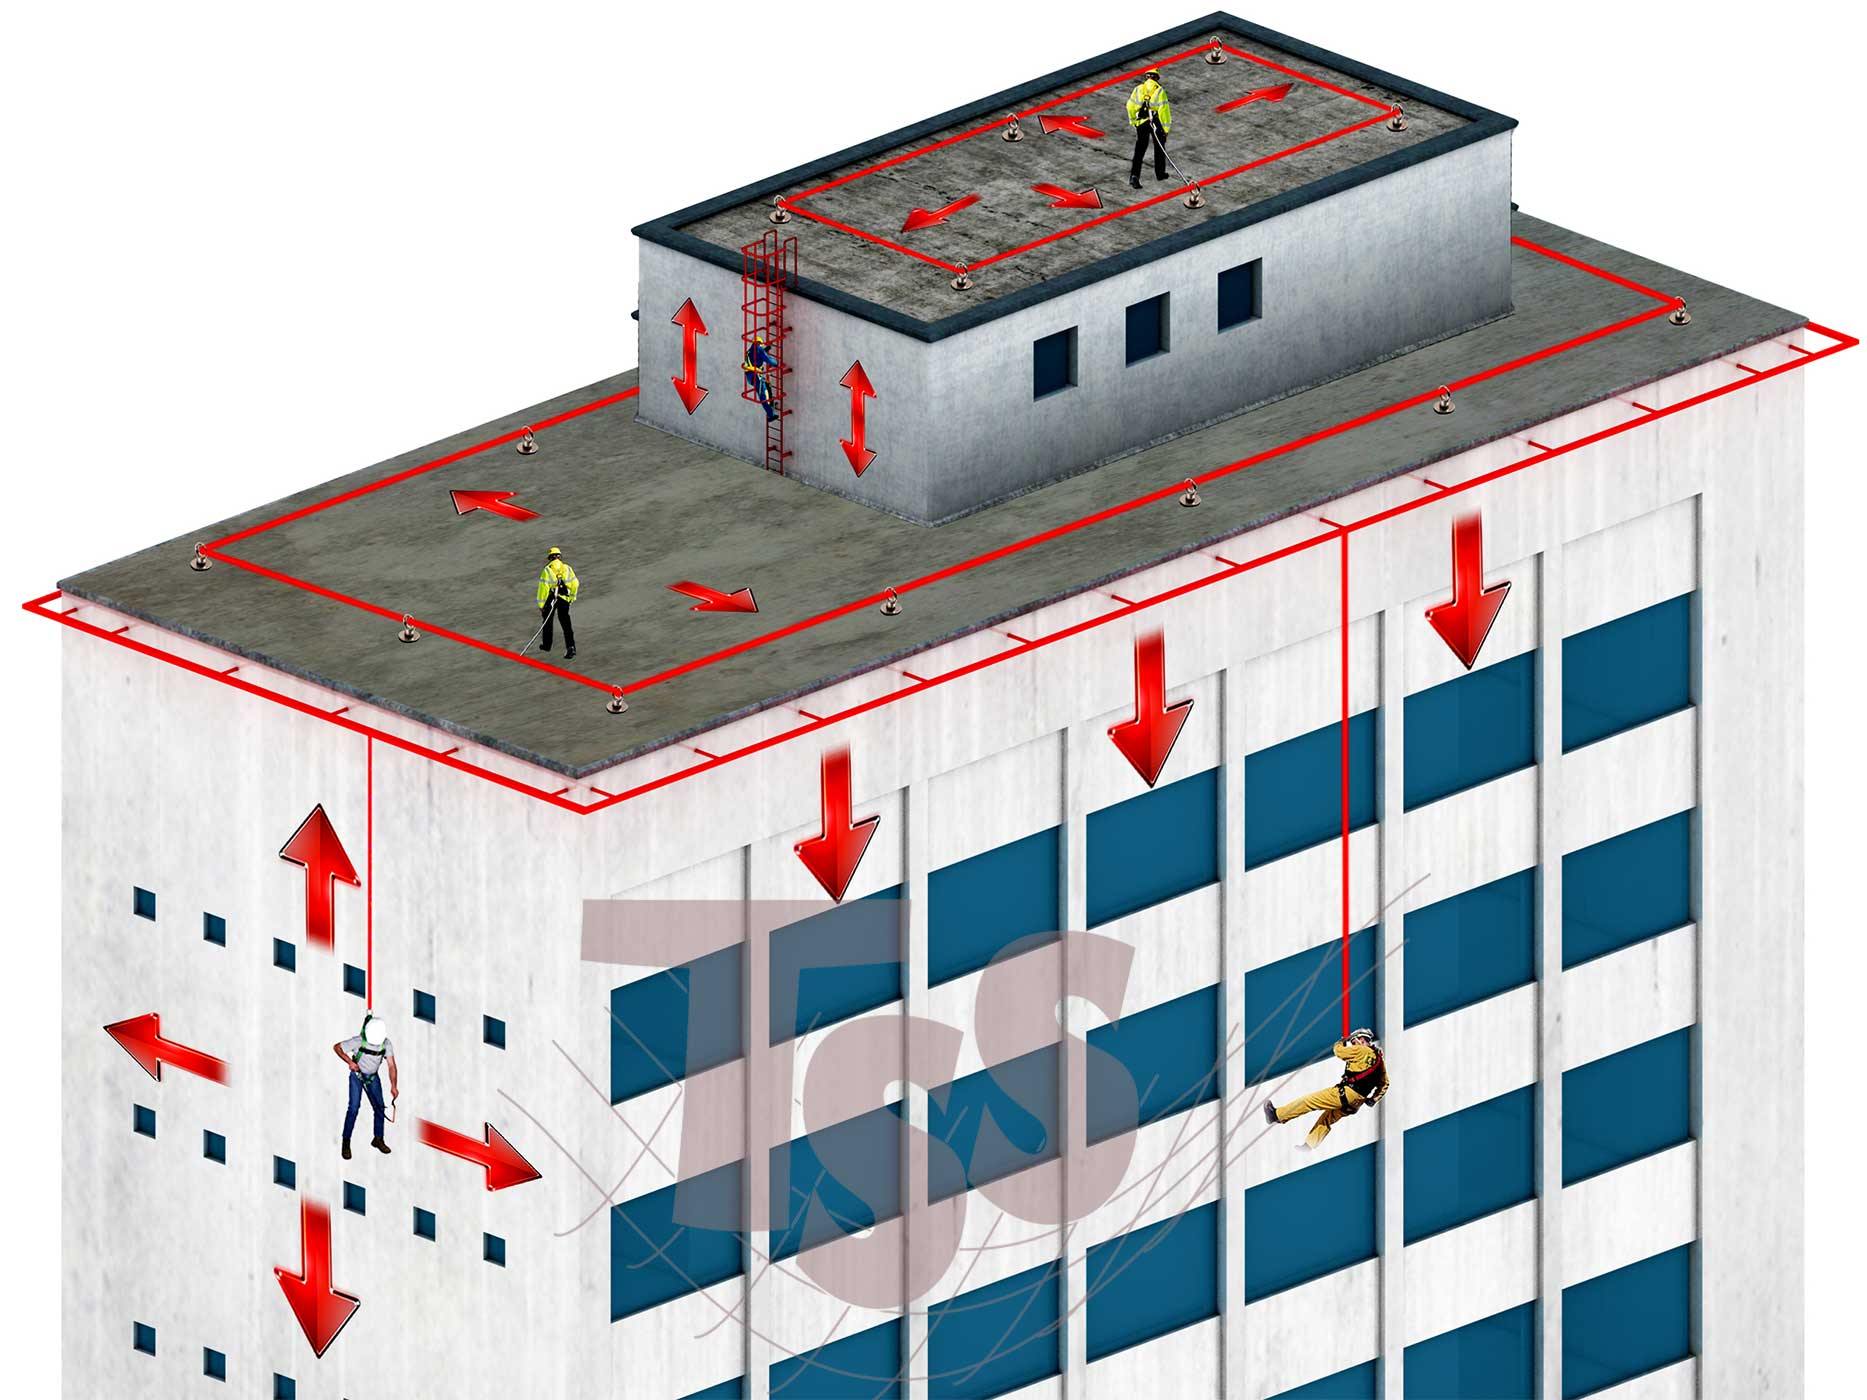 lifeline-system-Safety-TSS-Total-Safety-Solutions-in-Dubai-UAE-ABU-DHABI-ASIA-MIDDLE-EAST-GCC-Ladder